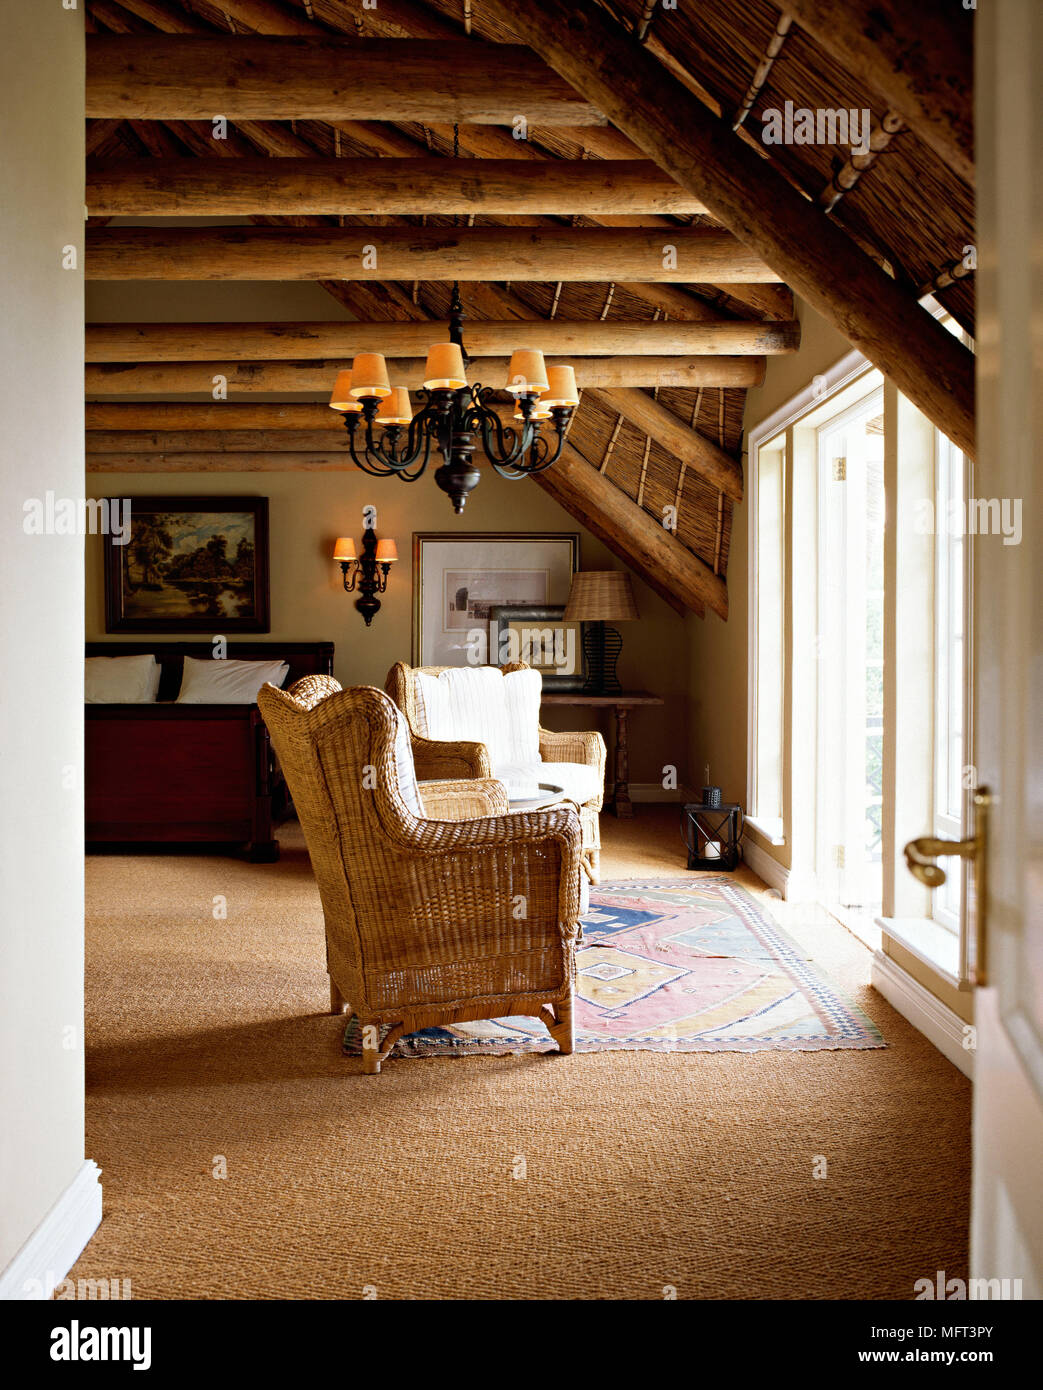 Bedroom wooden beams thatched ceiling slanted roof light green walls ...